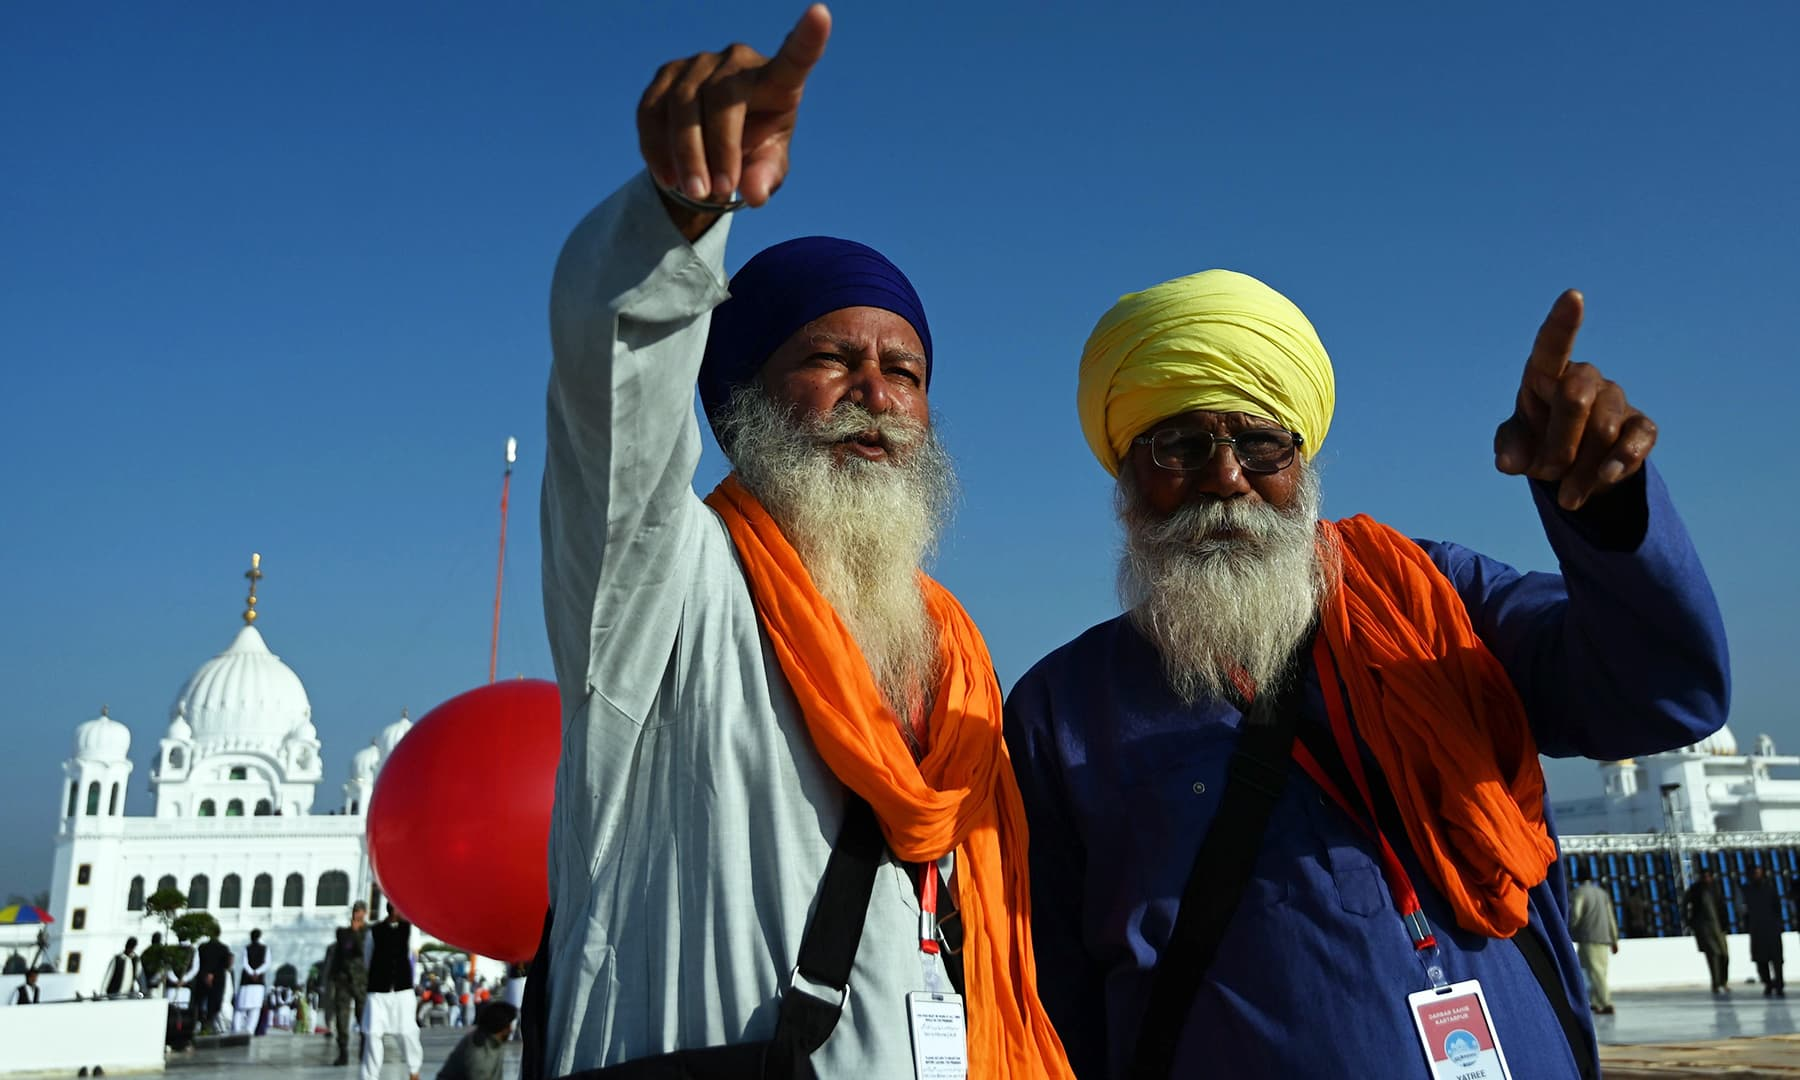 Sikh pilgrims point at the inauguration site of the Shrine of Baba Guru Nanak Dev at Gurdwara Darbar Sahib in Kartarpur on Saturday. — AFP